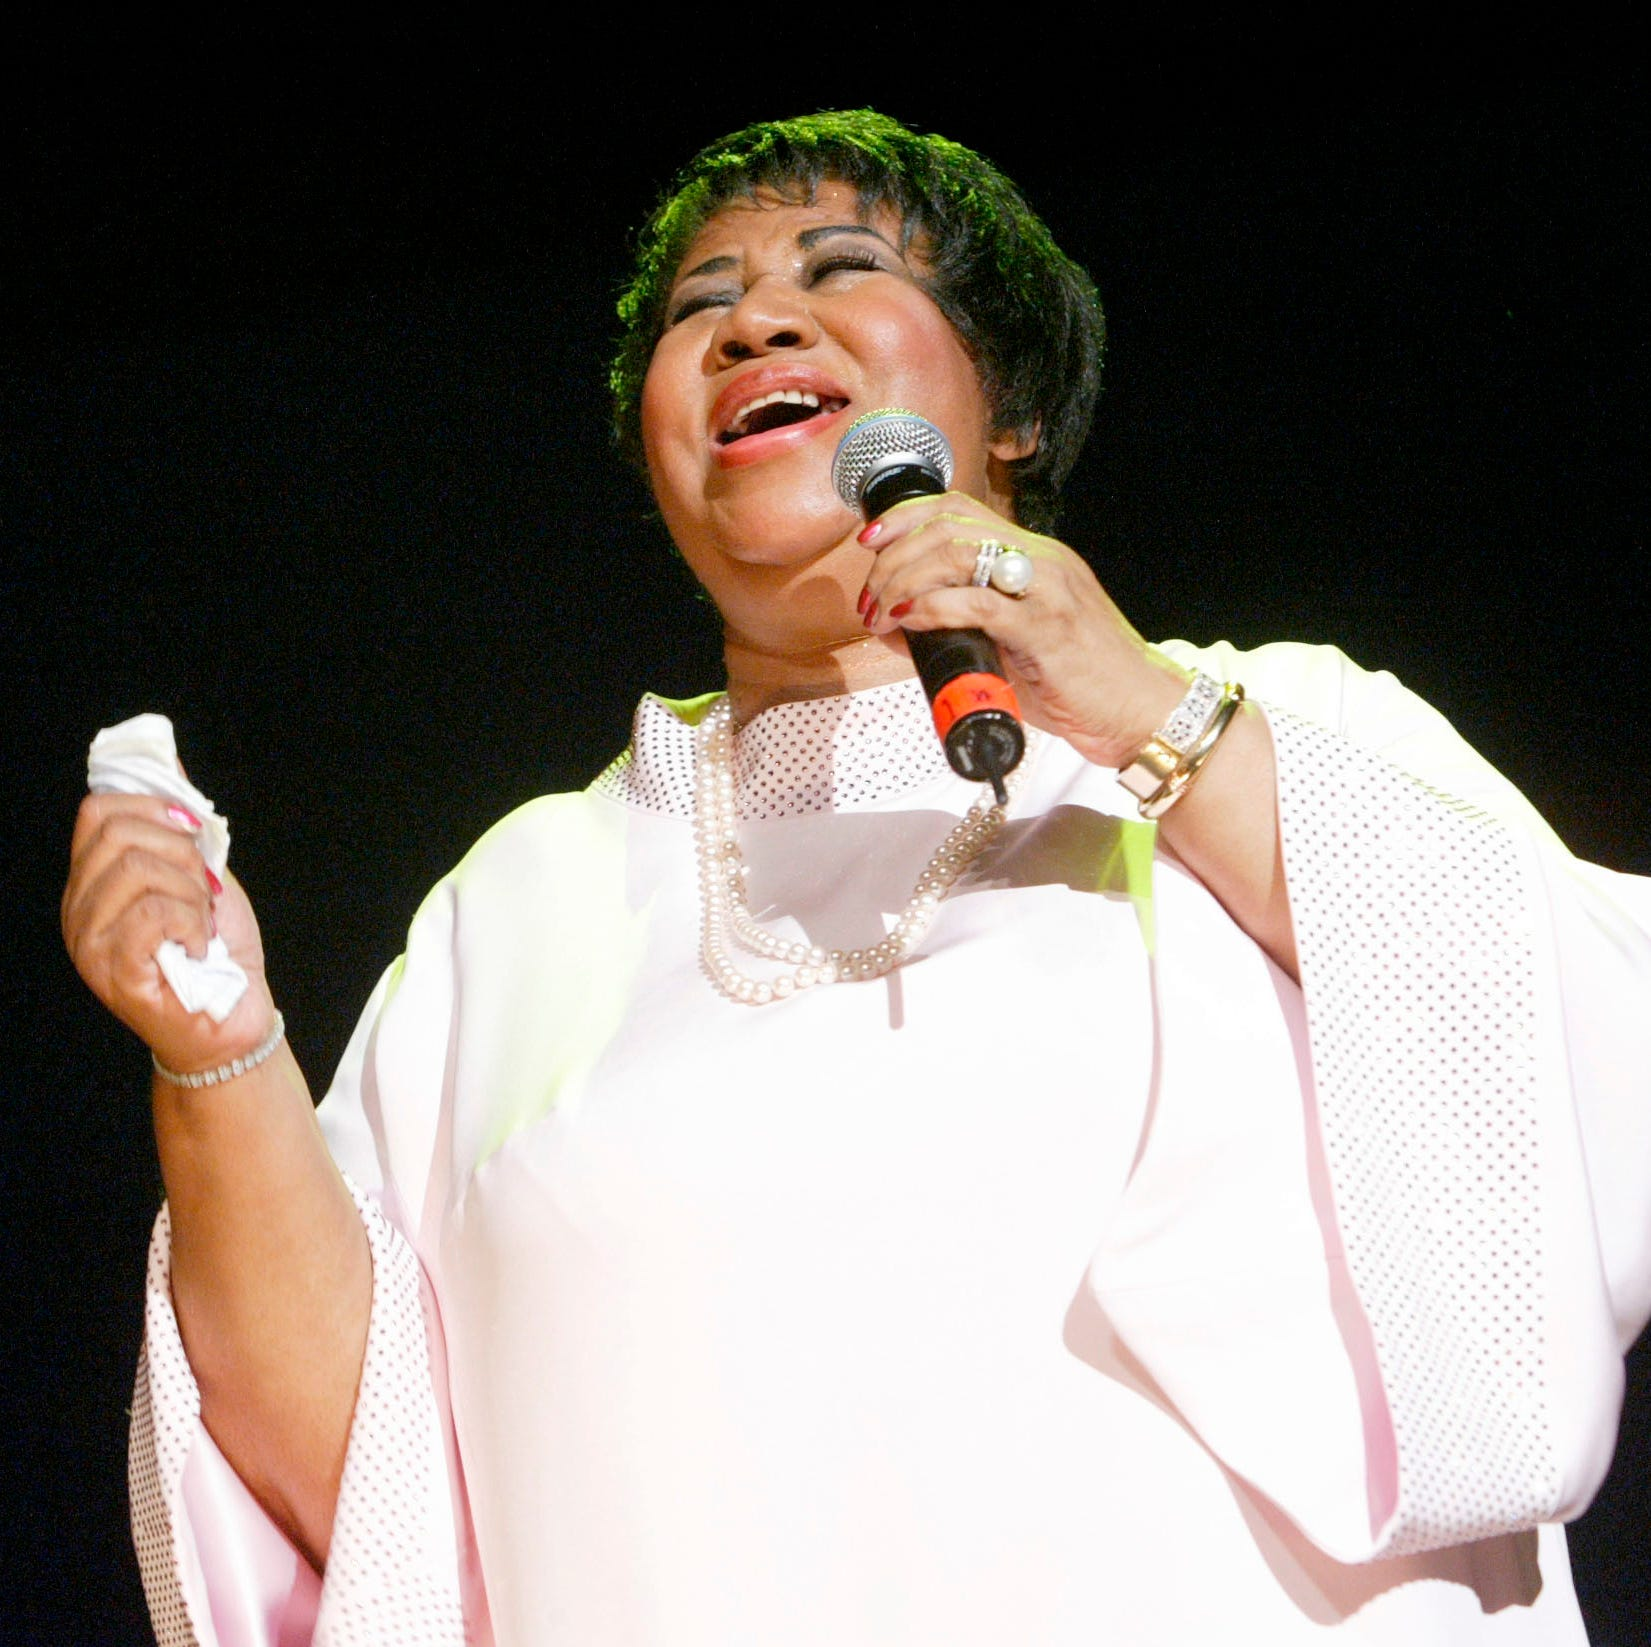 Let us now pay r-e-s-p-e-c-t to the late Queen of Soul | Mark Hinson